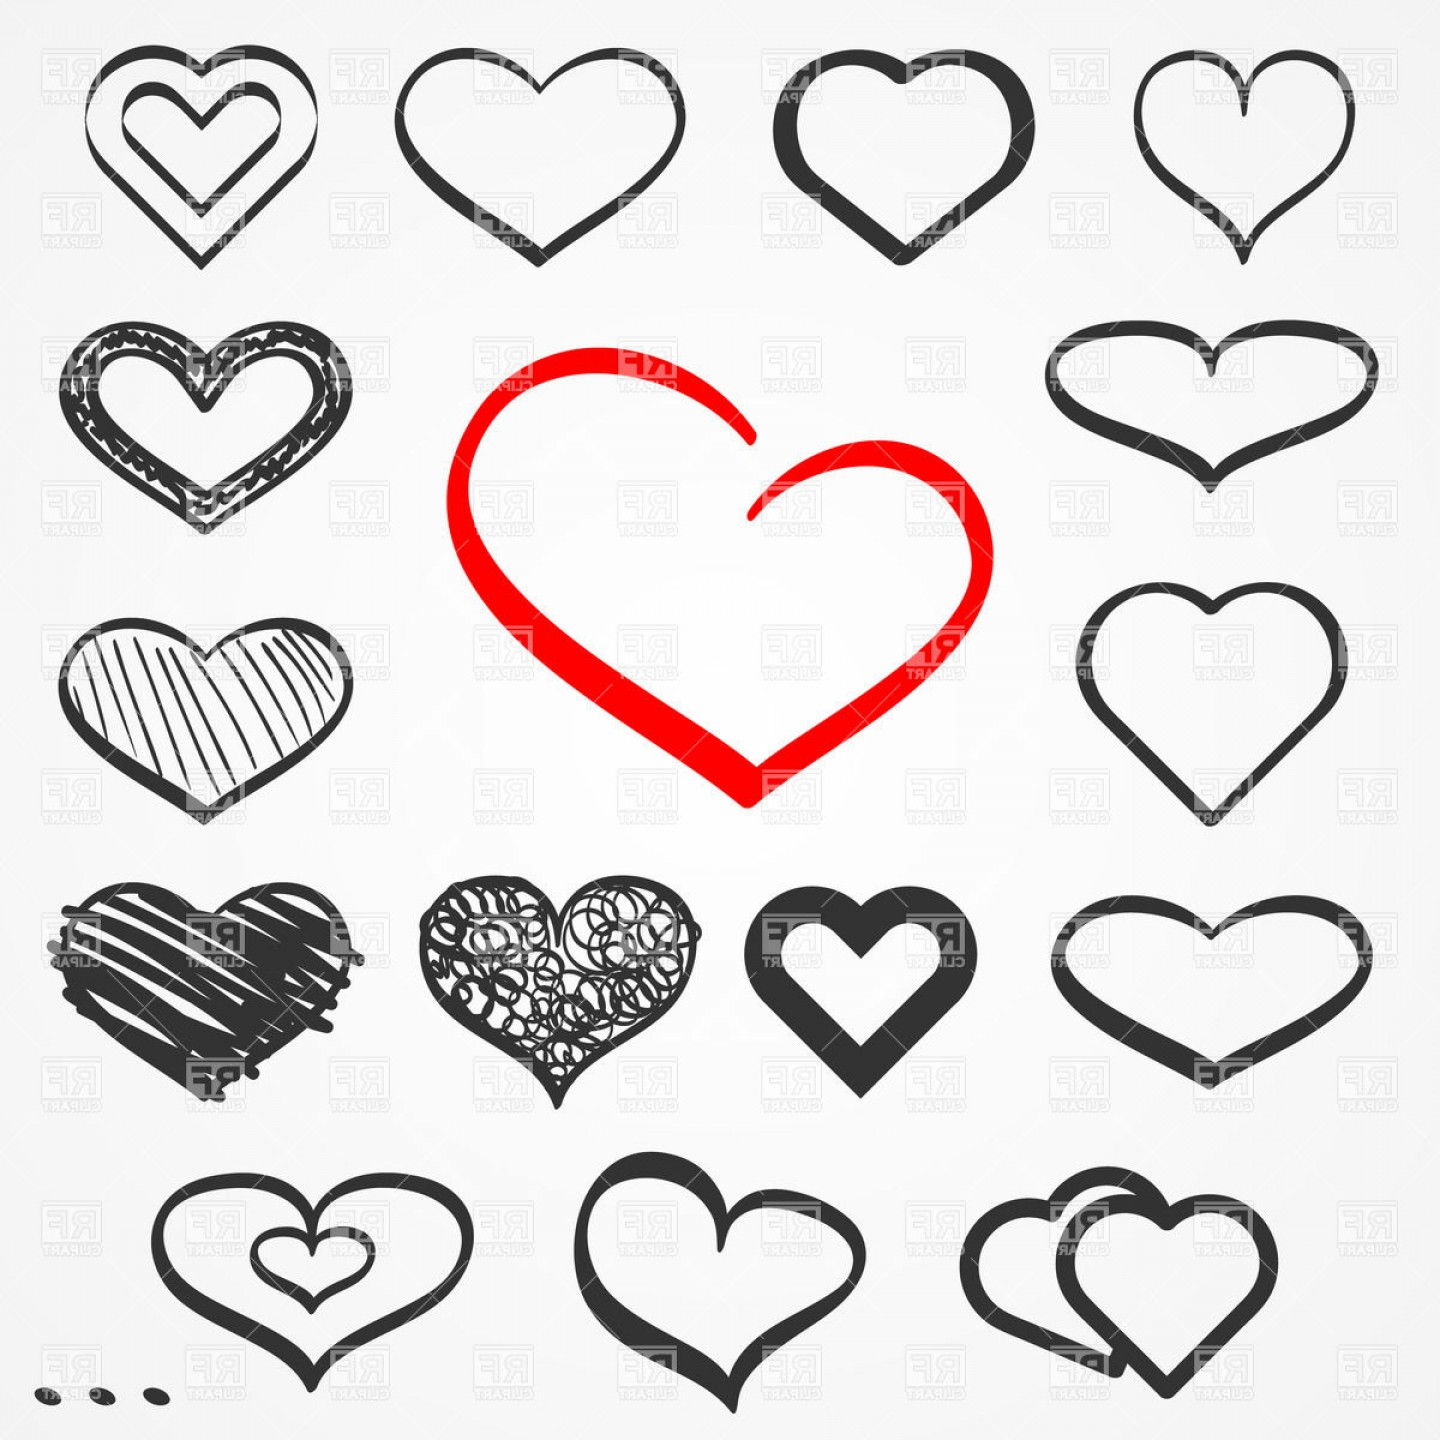 1440x1440 Abstract Sketch Hand Drawn Hearts Vector Clipart Arenawp